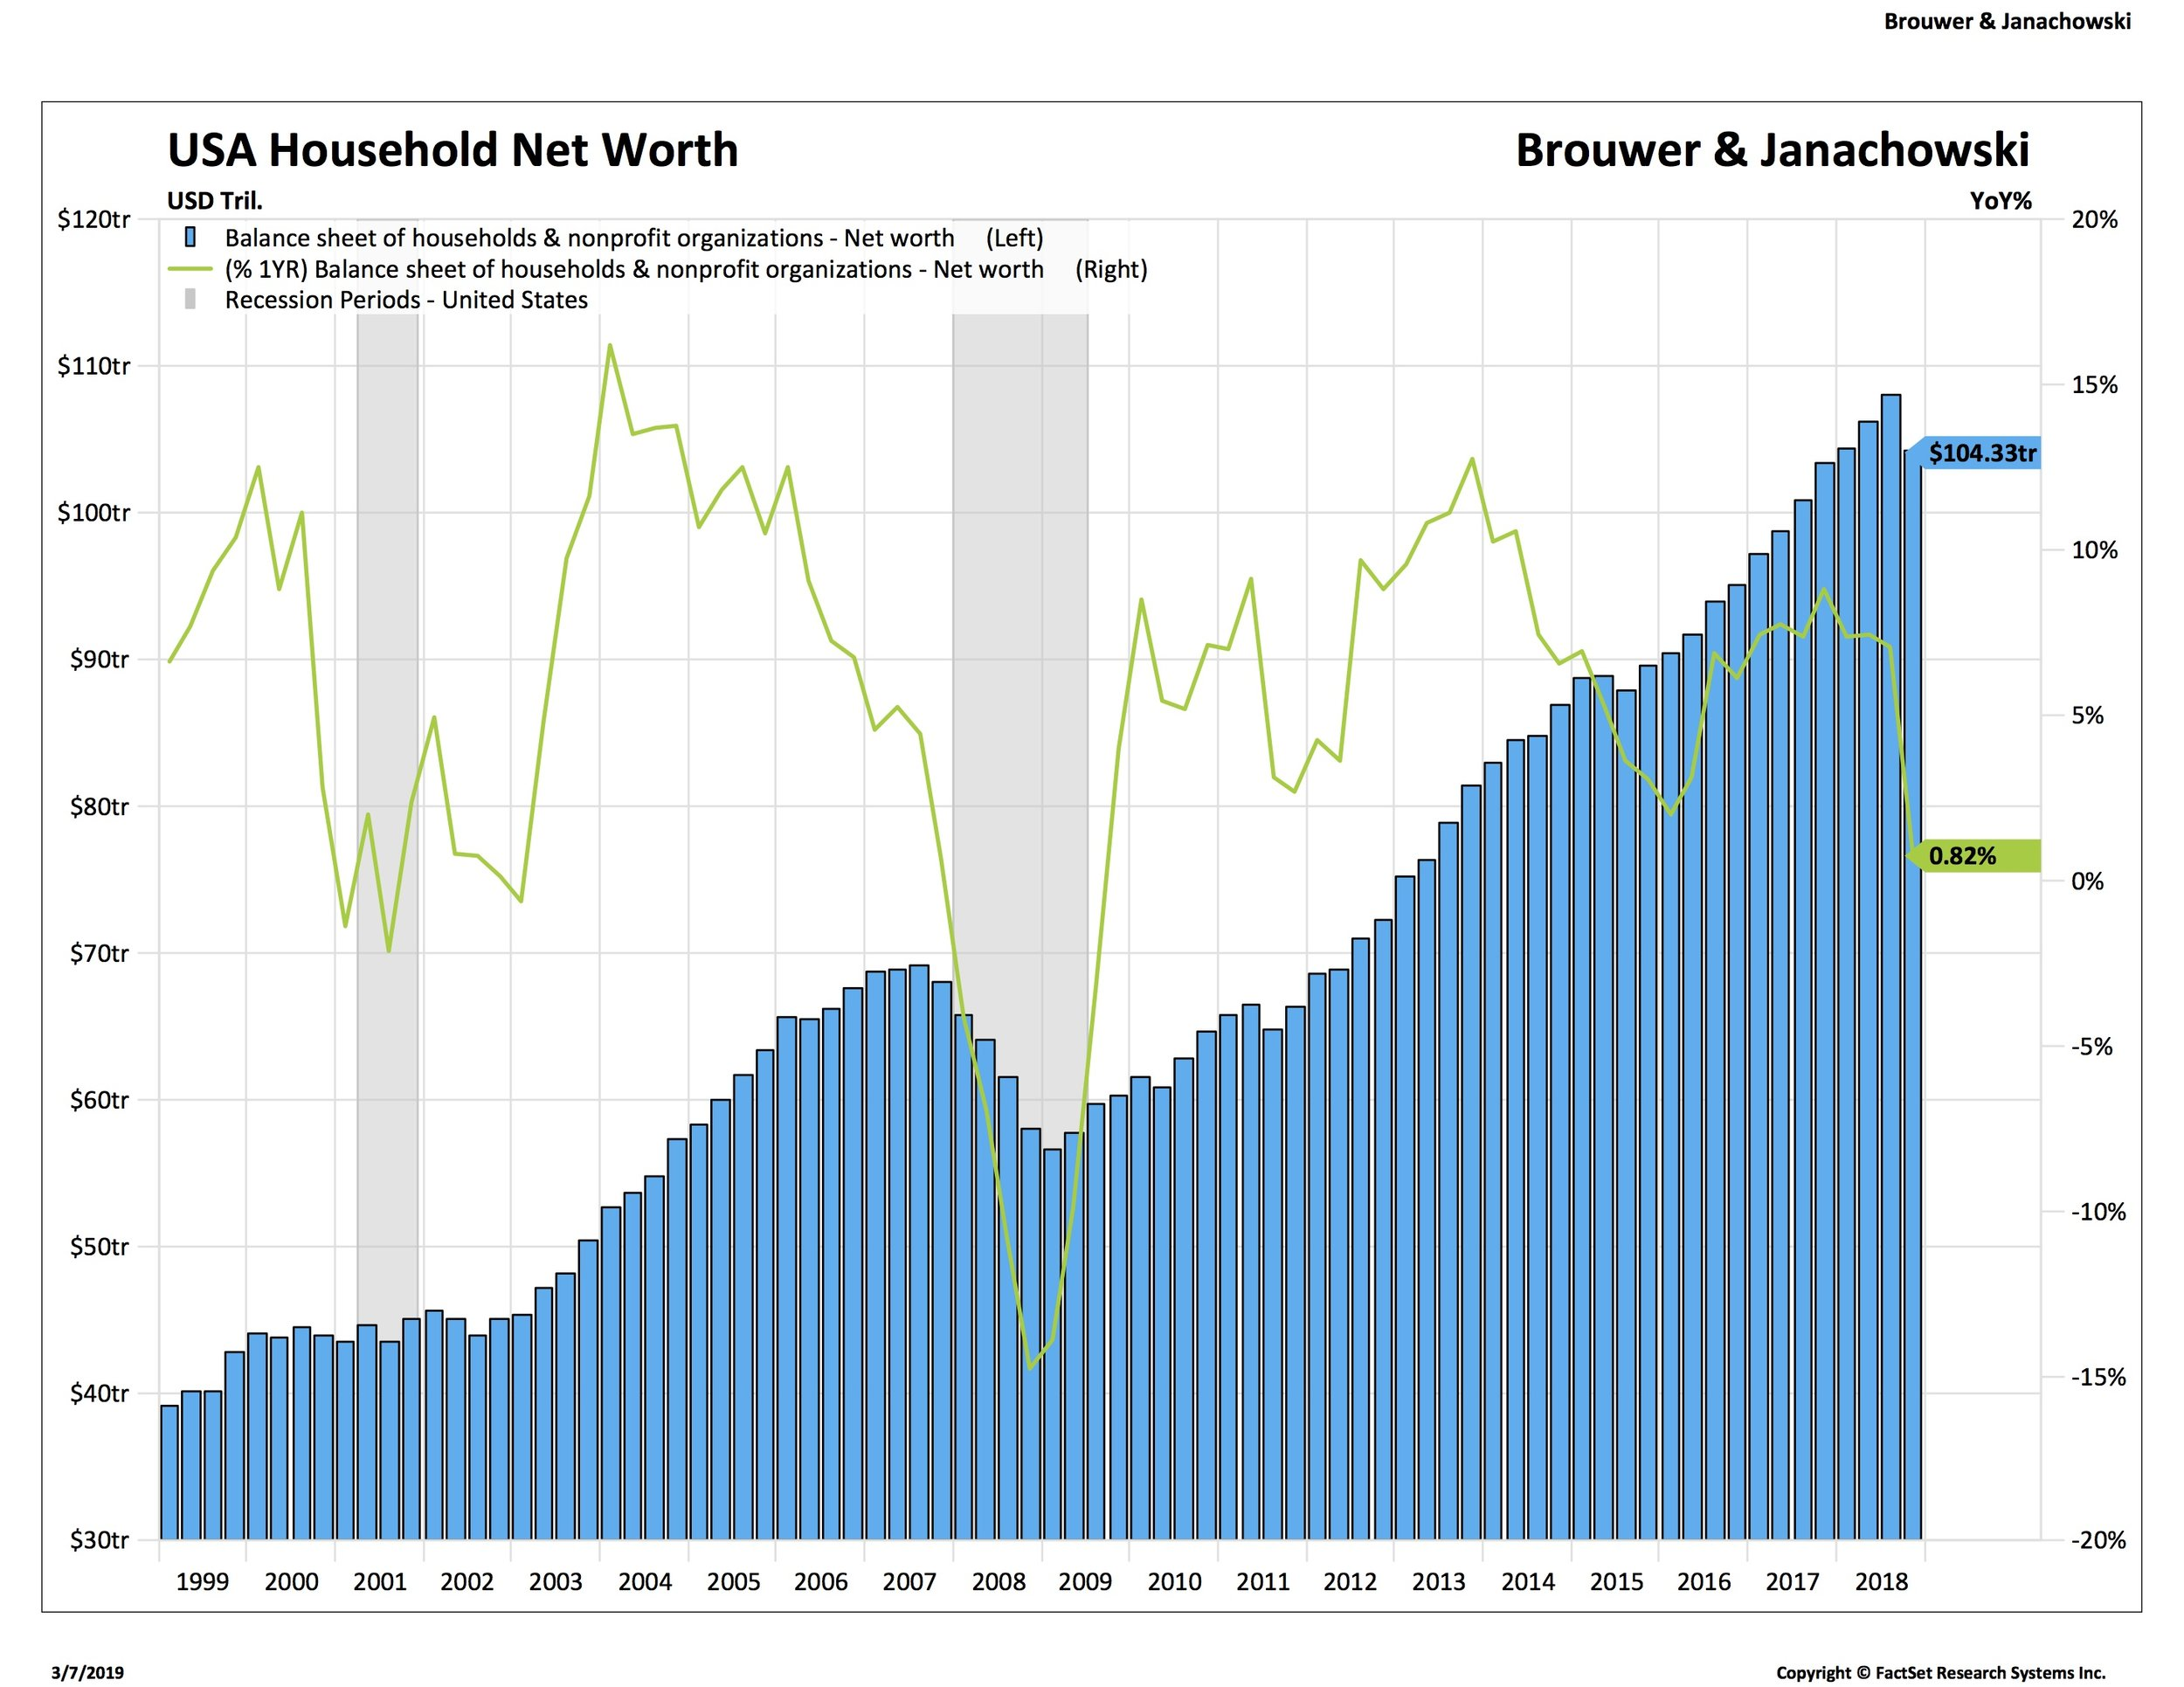 3. USA Household Net Worth2_HSI-HKX.jpg